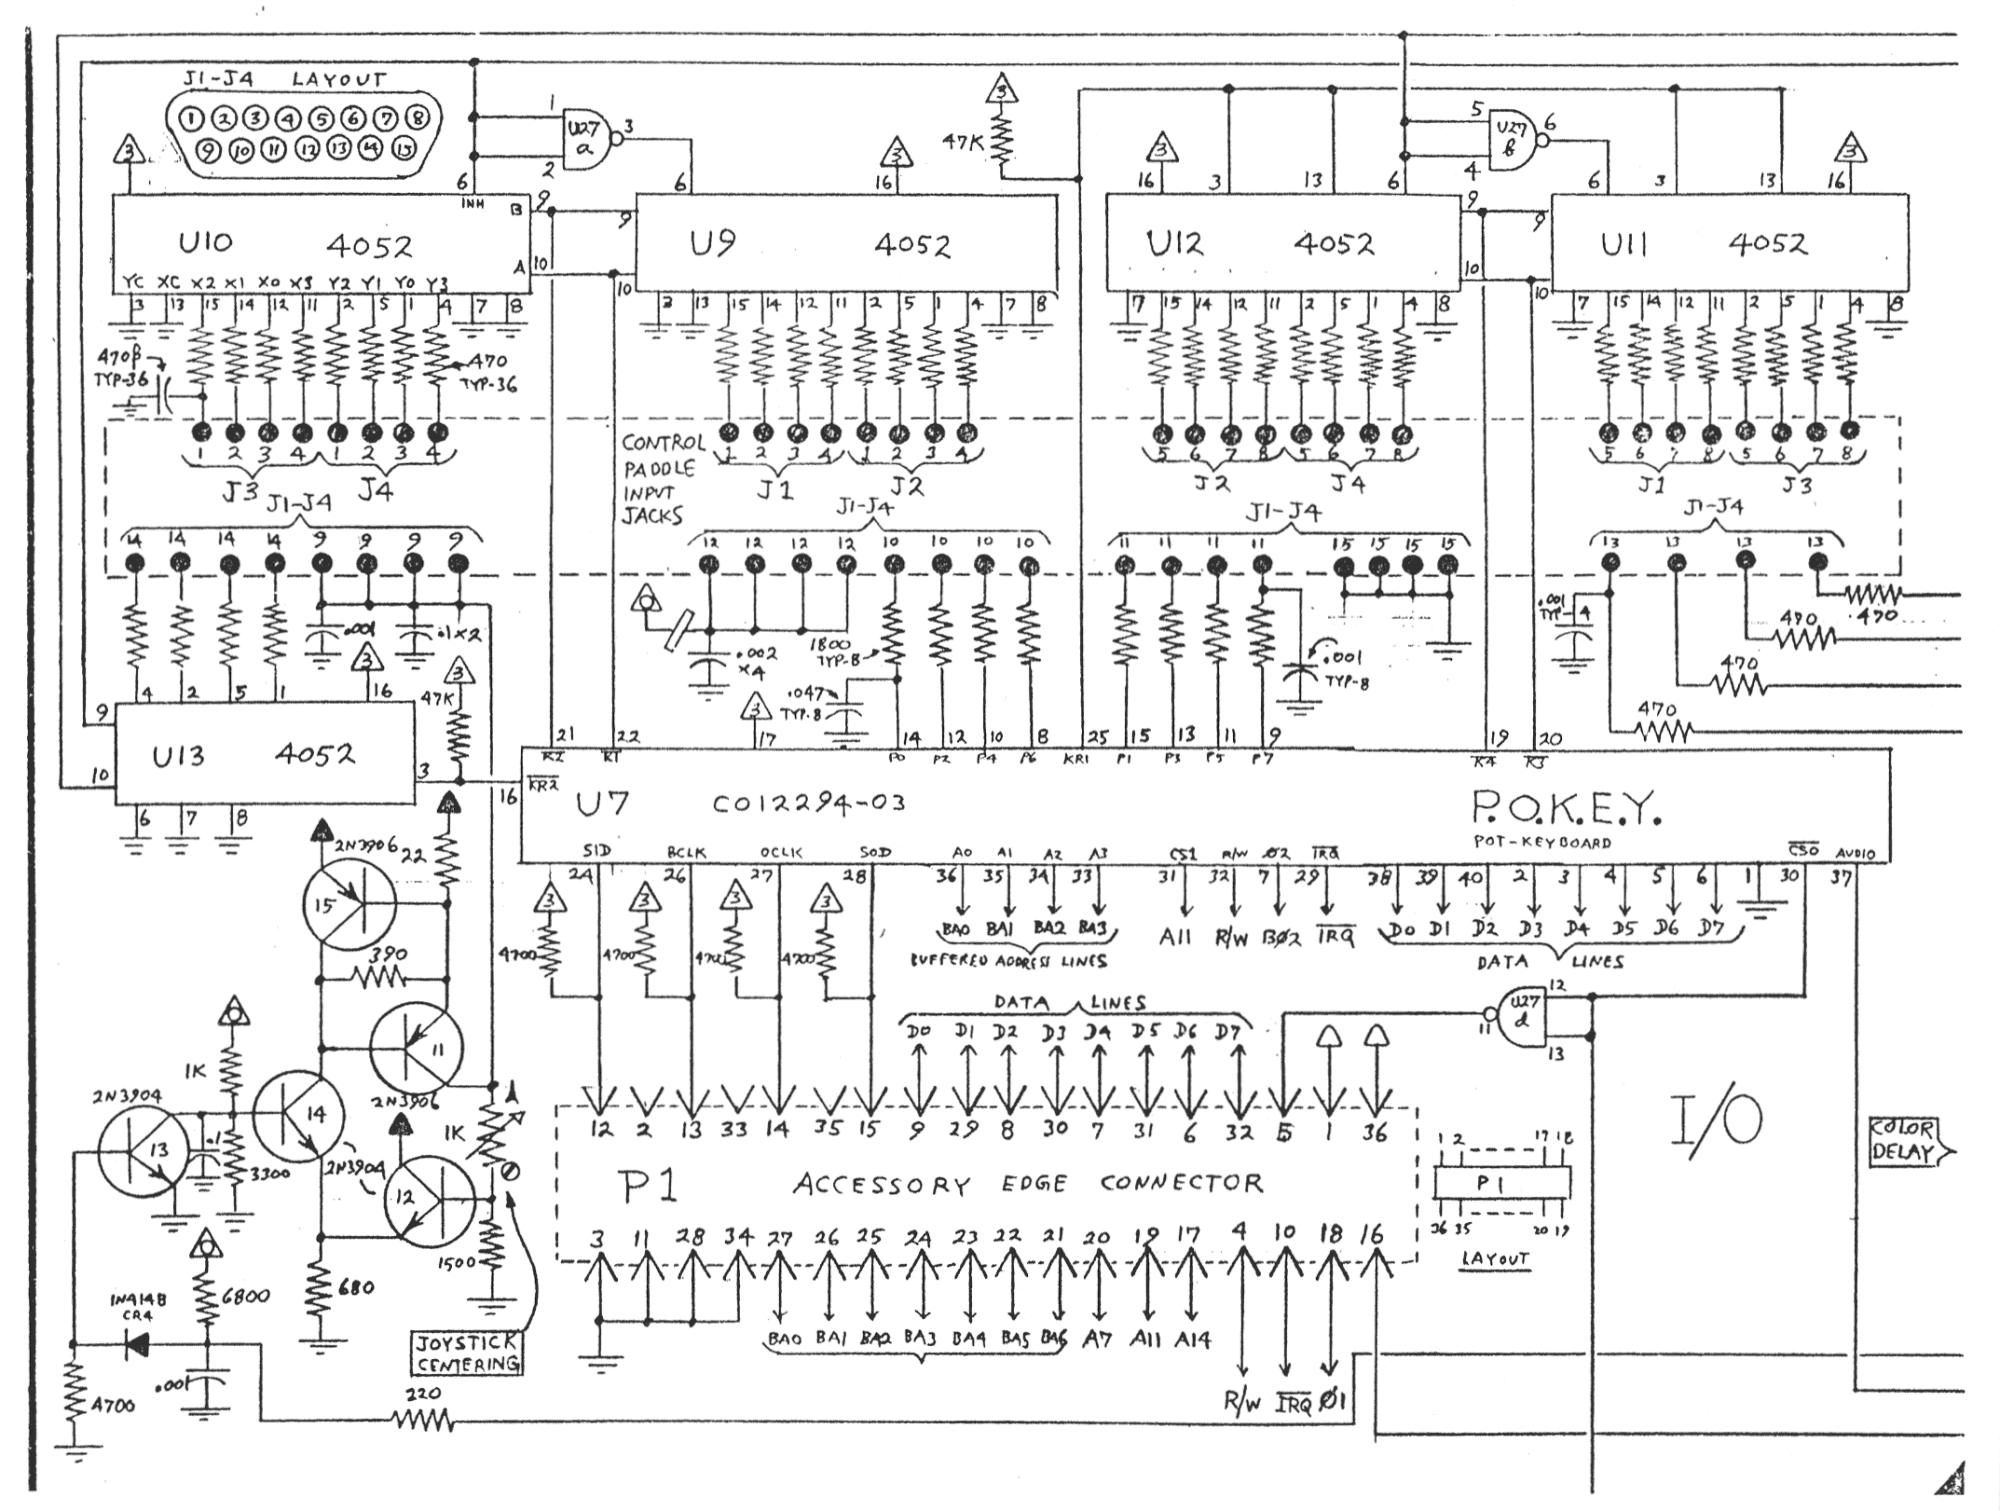 atari cx 80 wiring diagrams   27 wiring diagram images